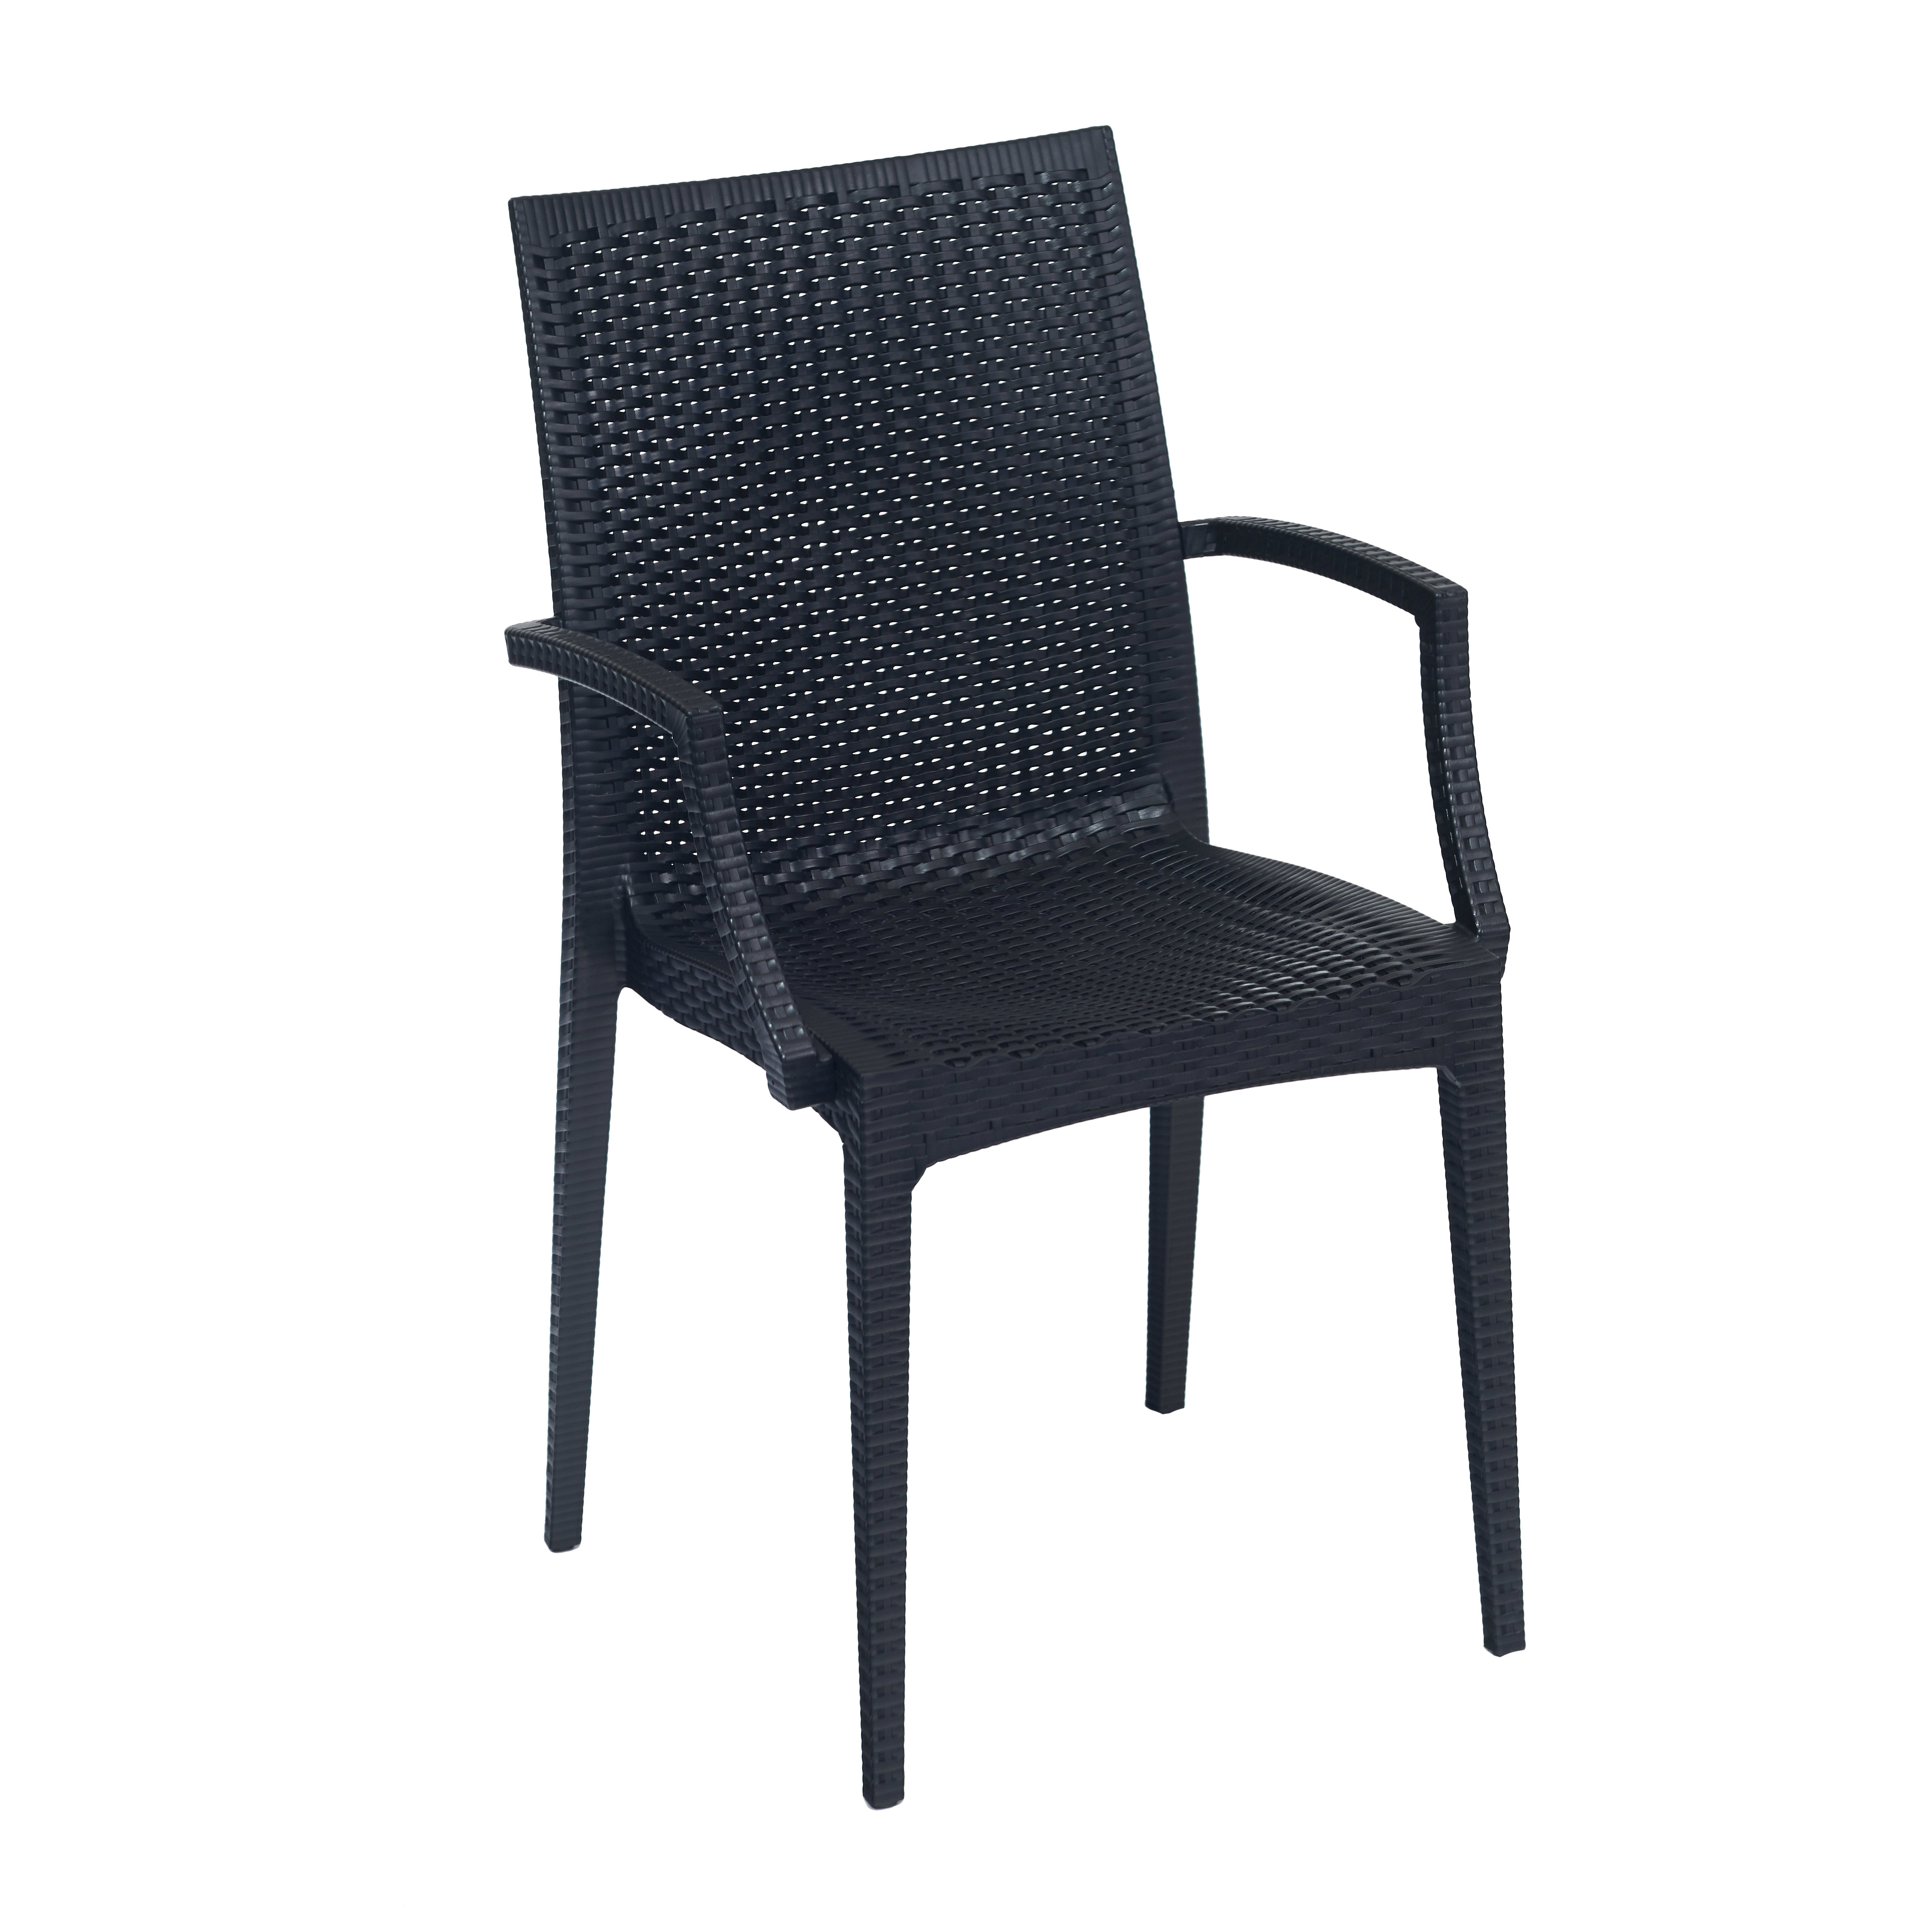 G & A Commercial Seating 245AR chair, side, outdoor